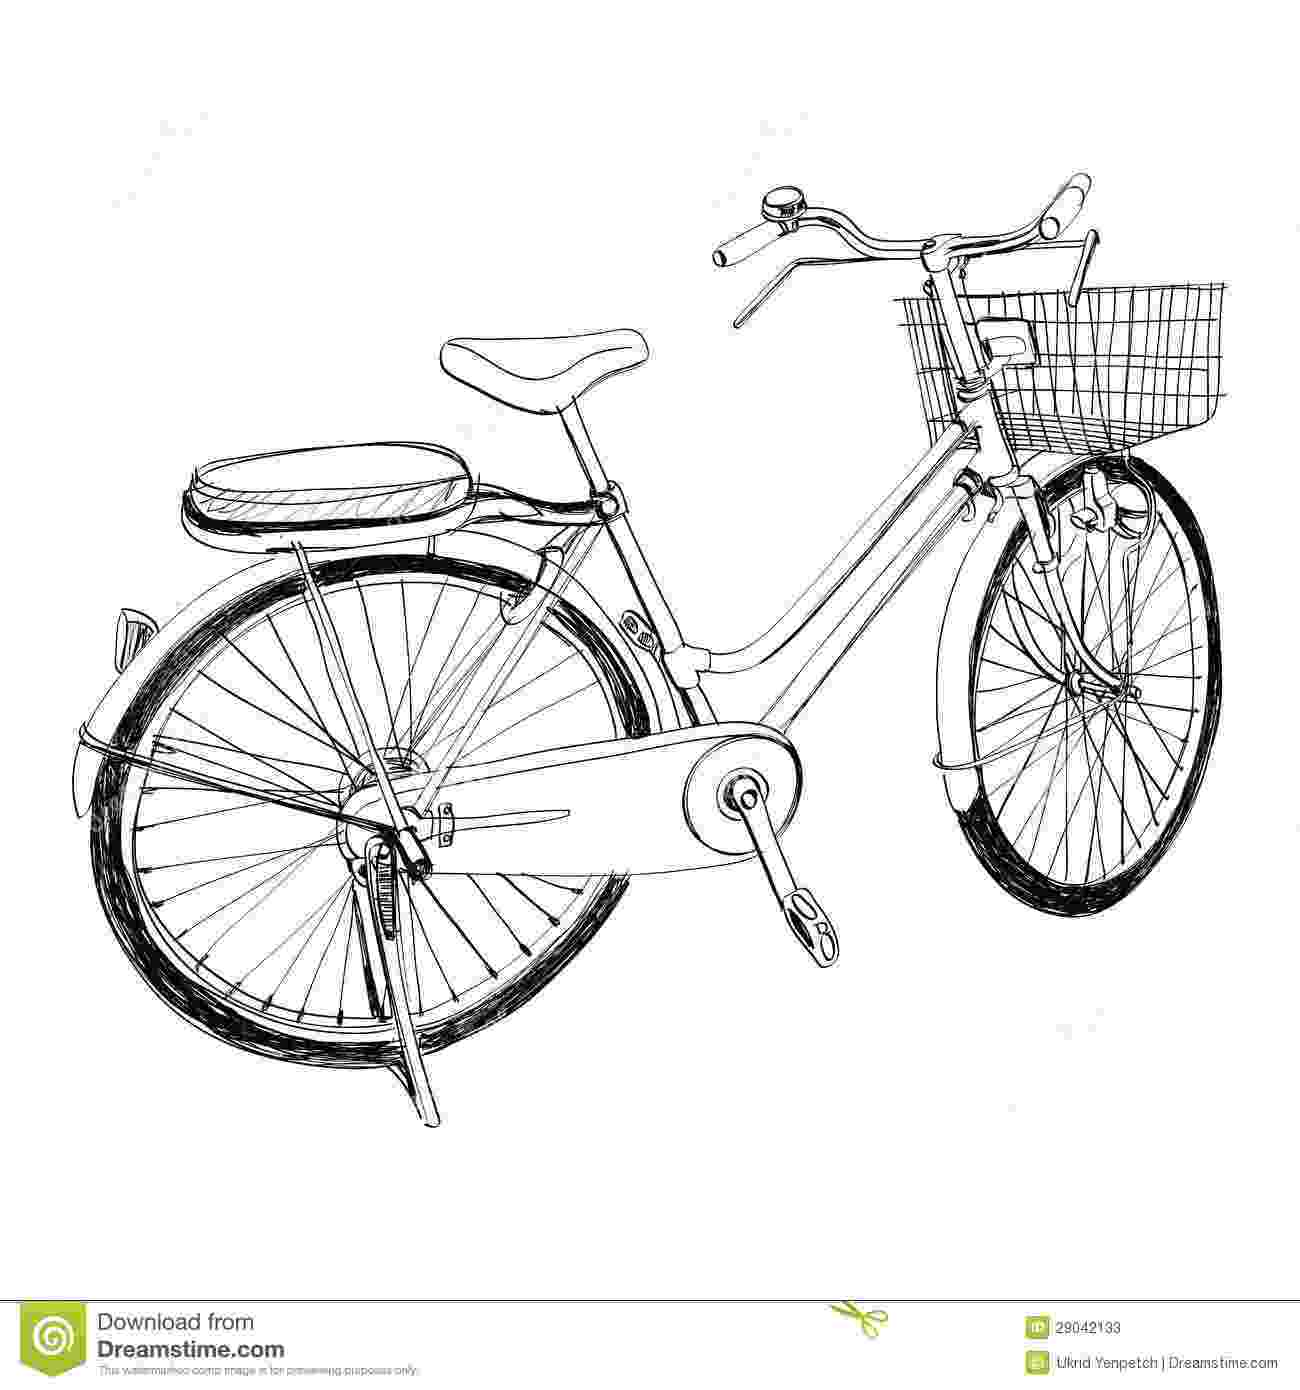 bicycle sketch old bicycle sketch illustration hand drawn stock photos bicycle sketch